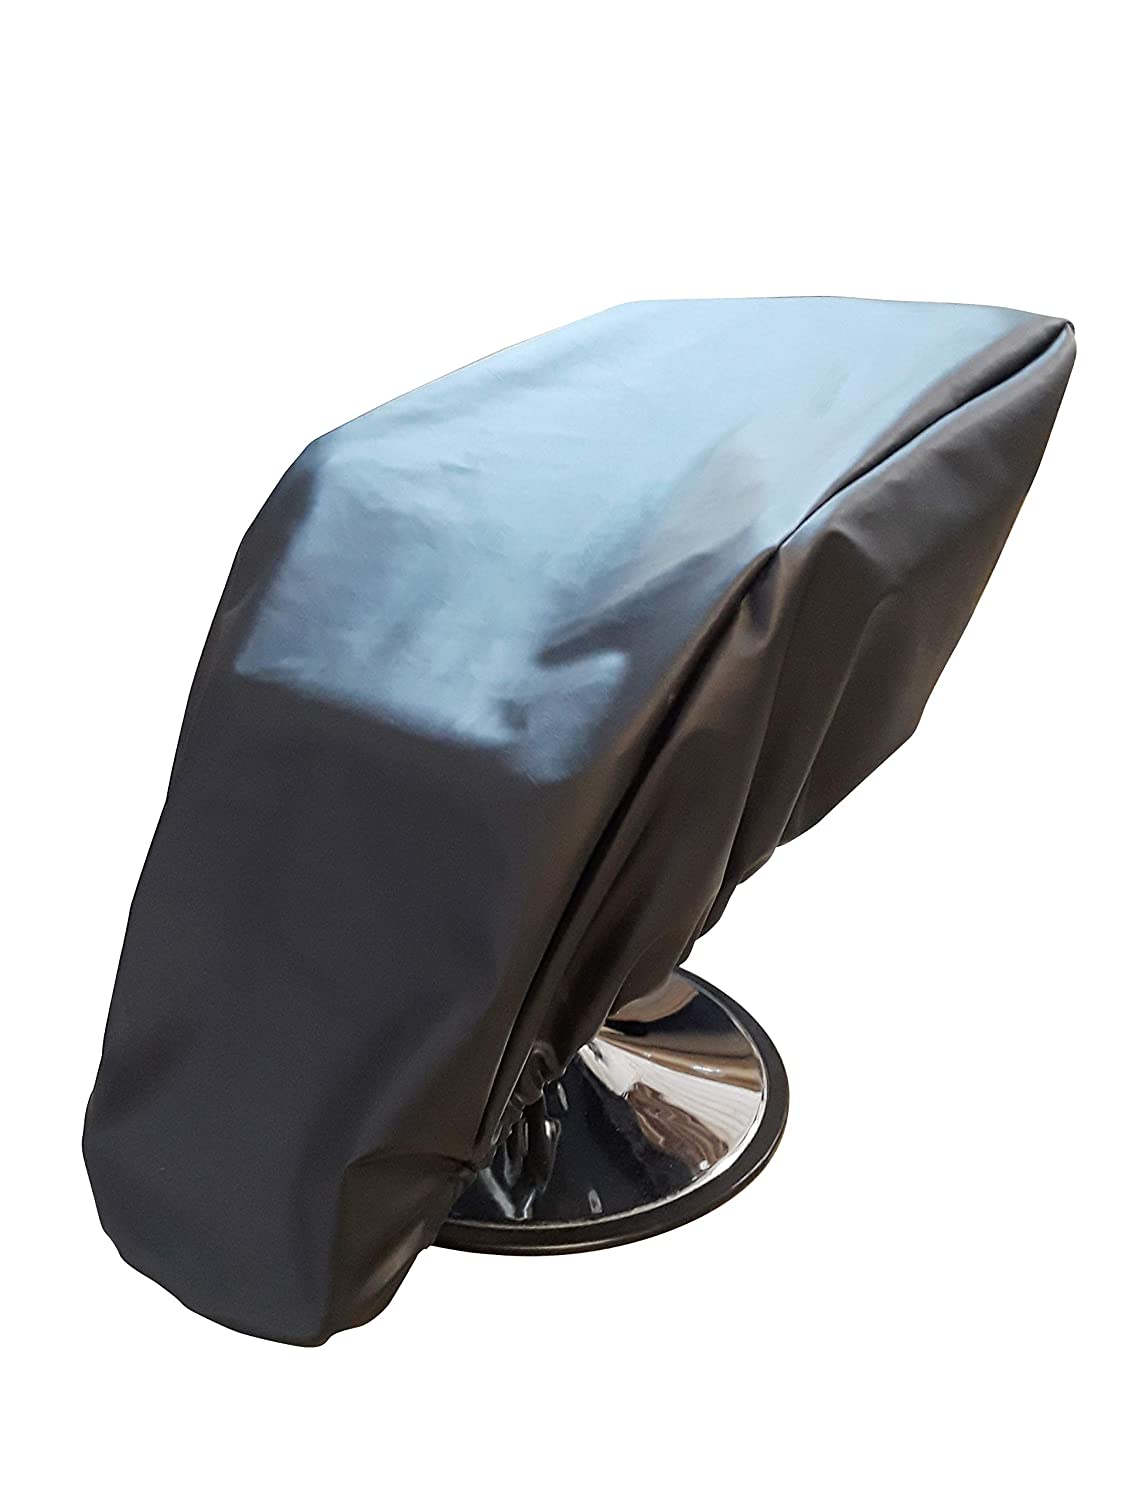 Enjoyable Styling Chair Cover For Hair Salons Beauty Equipment Protective Covers To Help Prevent Child Injuries Made In The Usa Interior Design Ideas Clesiryabchikinfo